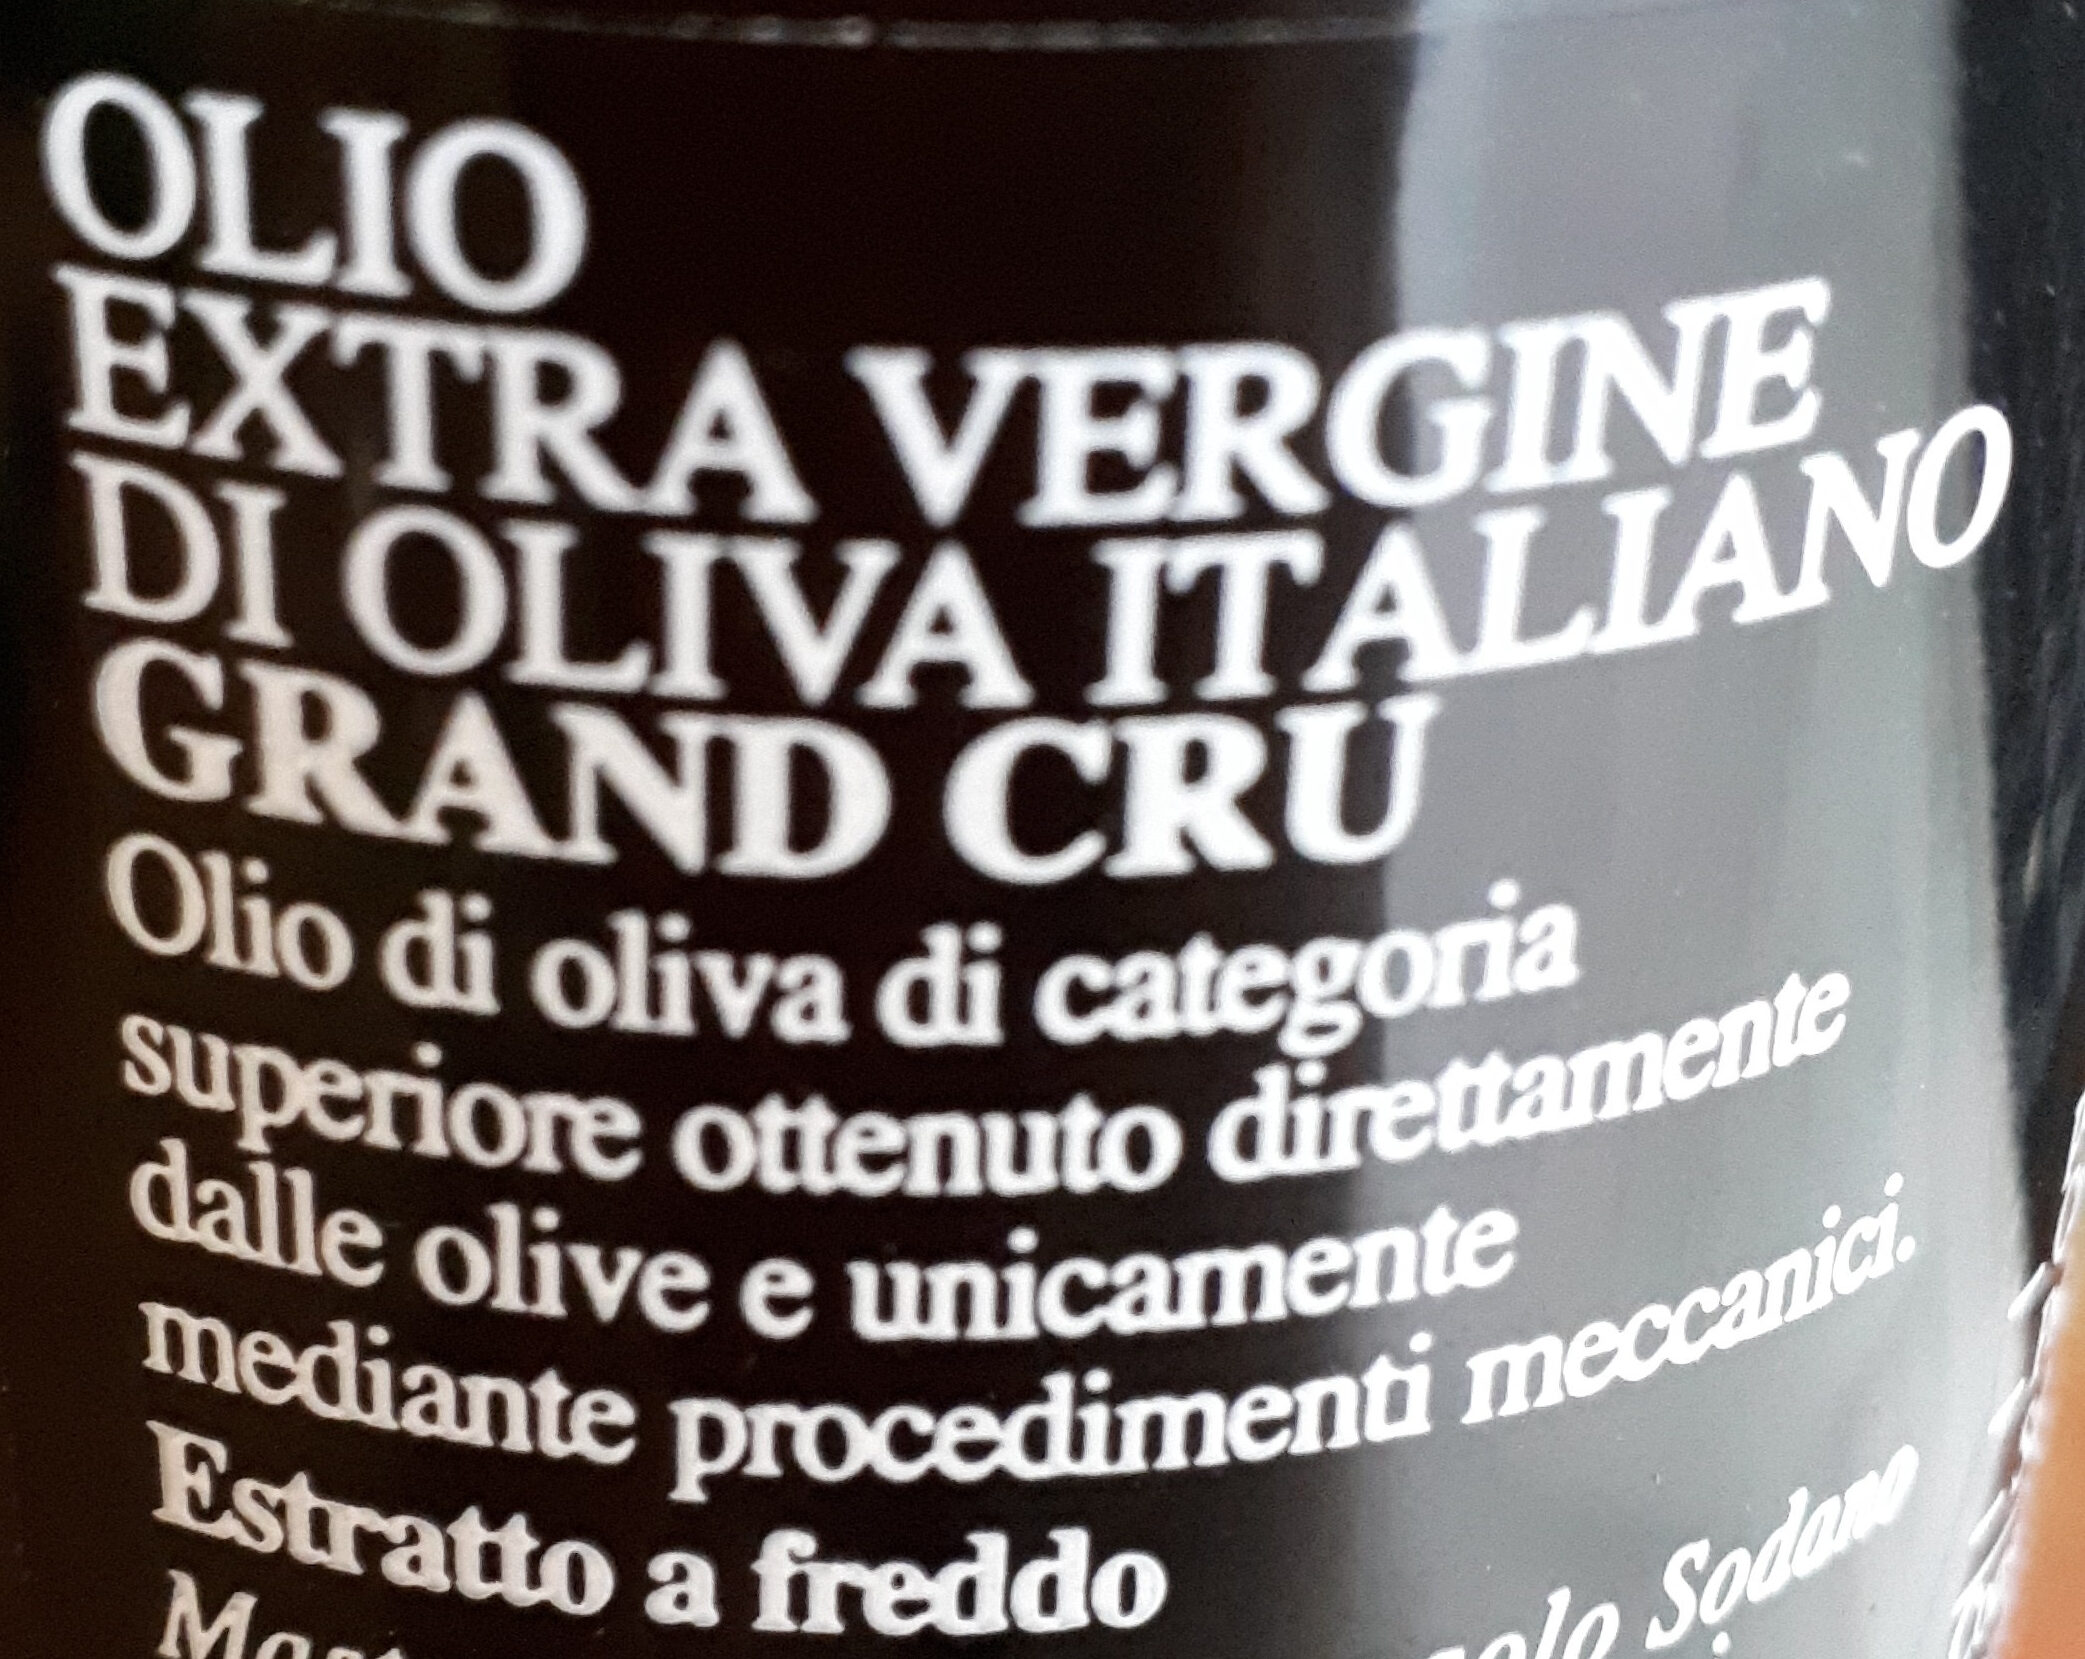 Olio Extravergine di oliva italiano - Ingrédients - it